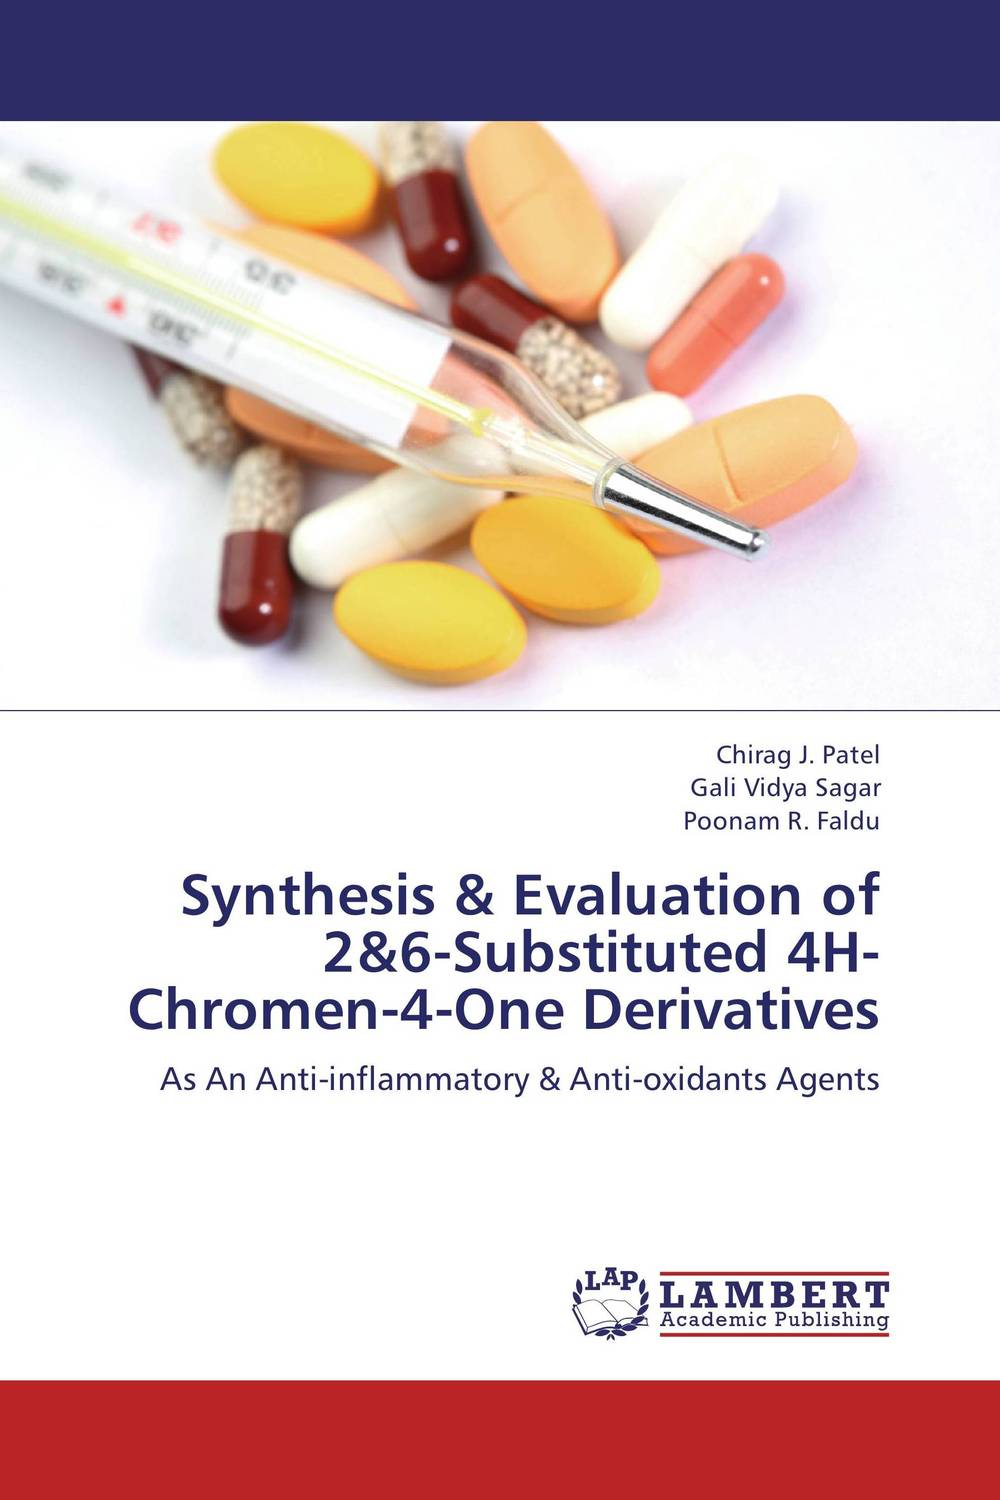 Synthesis & Evaluation of 2&6-Substituted 4H-Chromen-4-One Derivatives nagat abady adel el gendy and mohamed mokhtar synthesis of certain indole 2 carboxylate derivatives